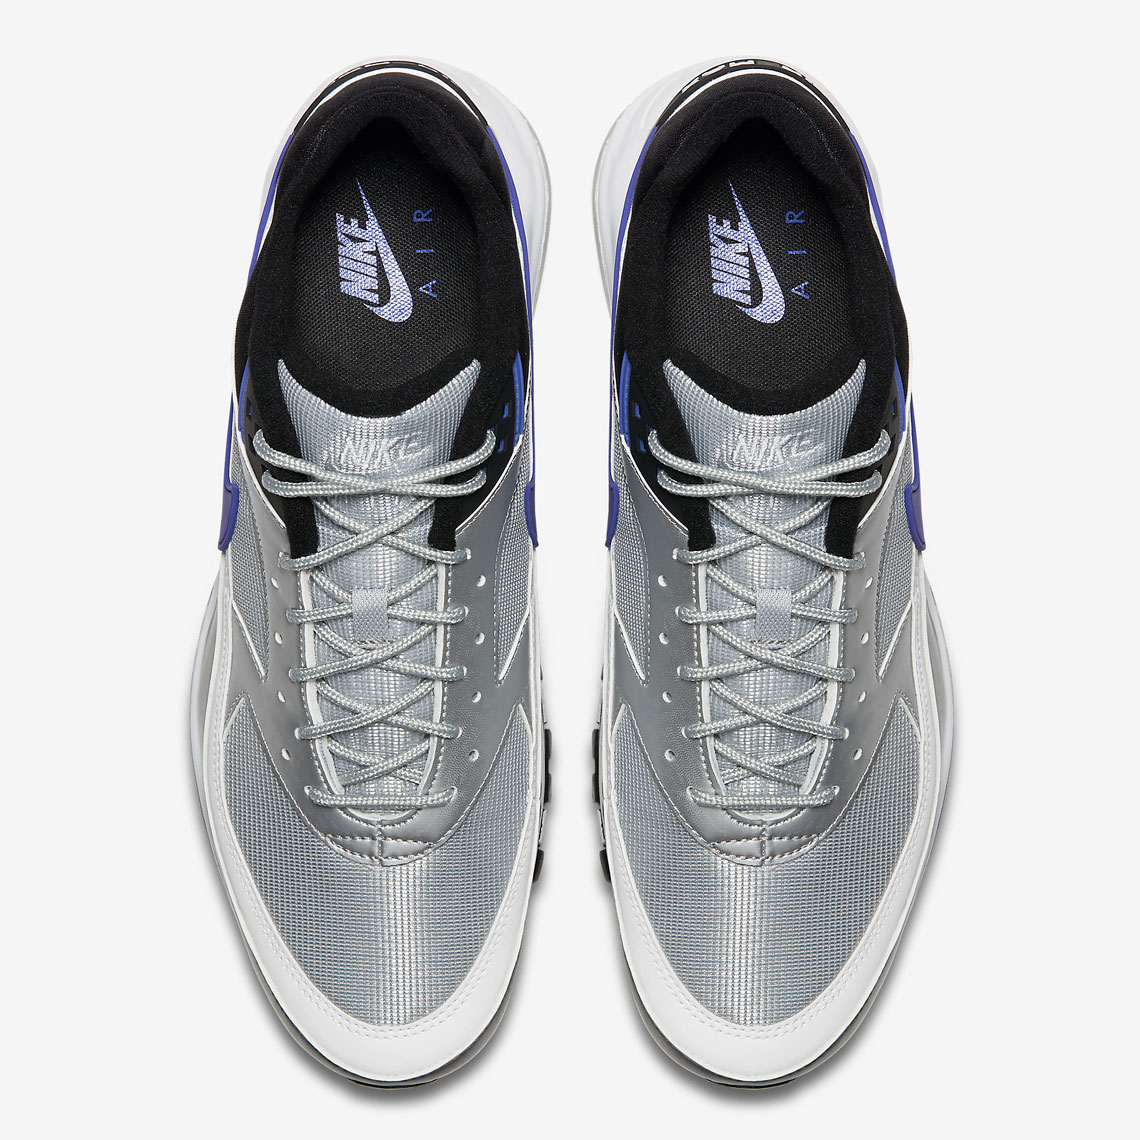 57fbb0633f2 Nike Air Max 97 BW Persian Violet AO2406-002 Release Info ...